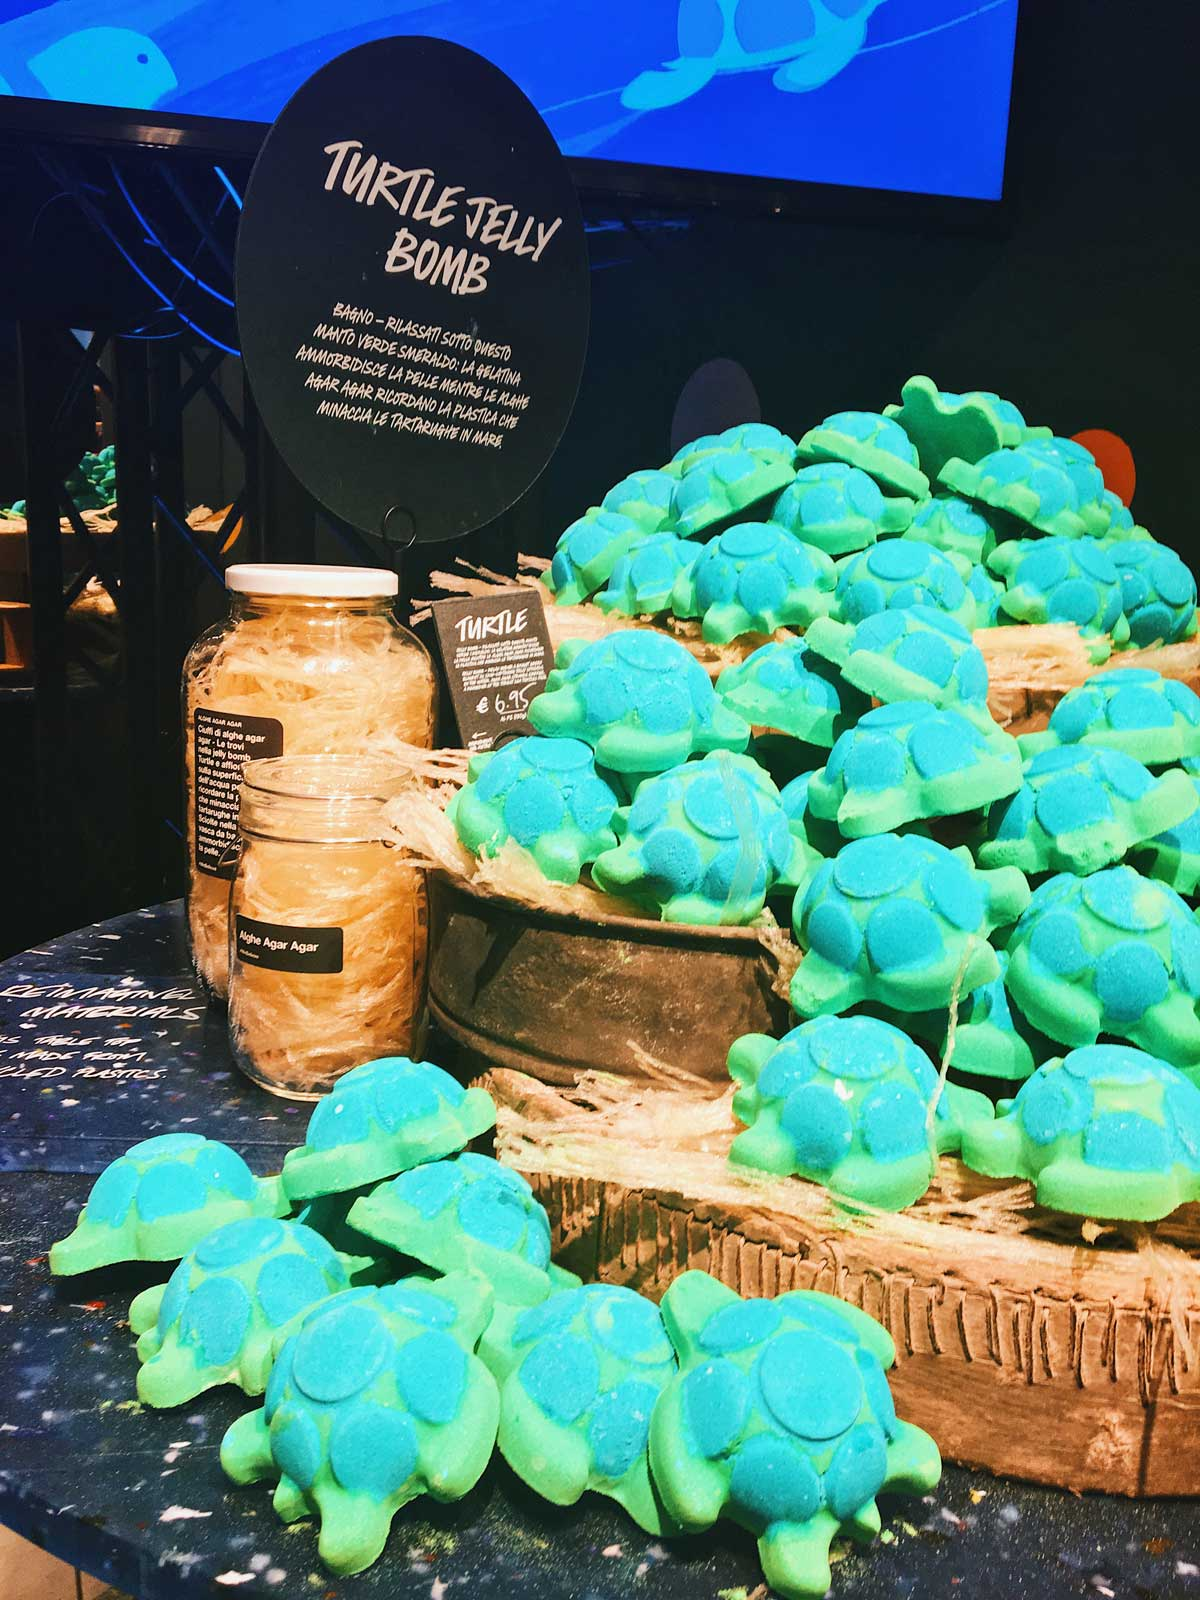 turtle jelly bomb lush naked shop via torino